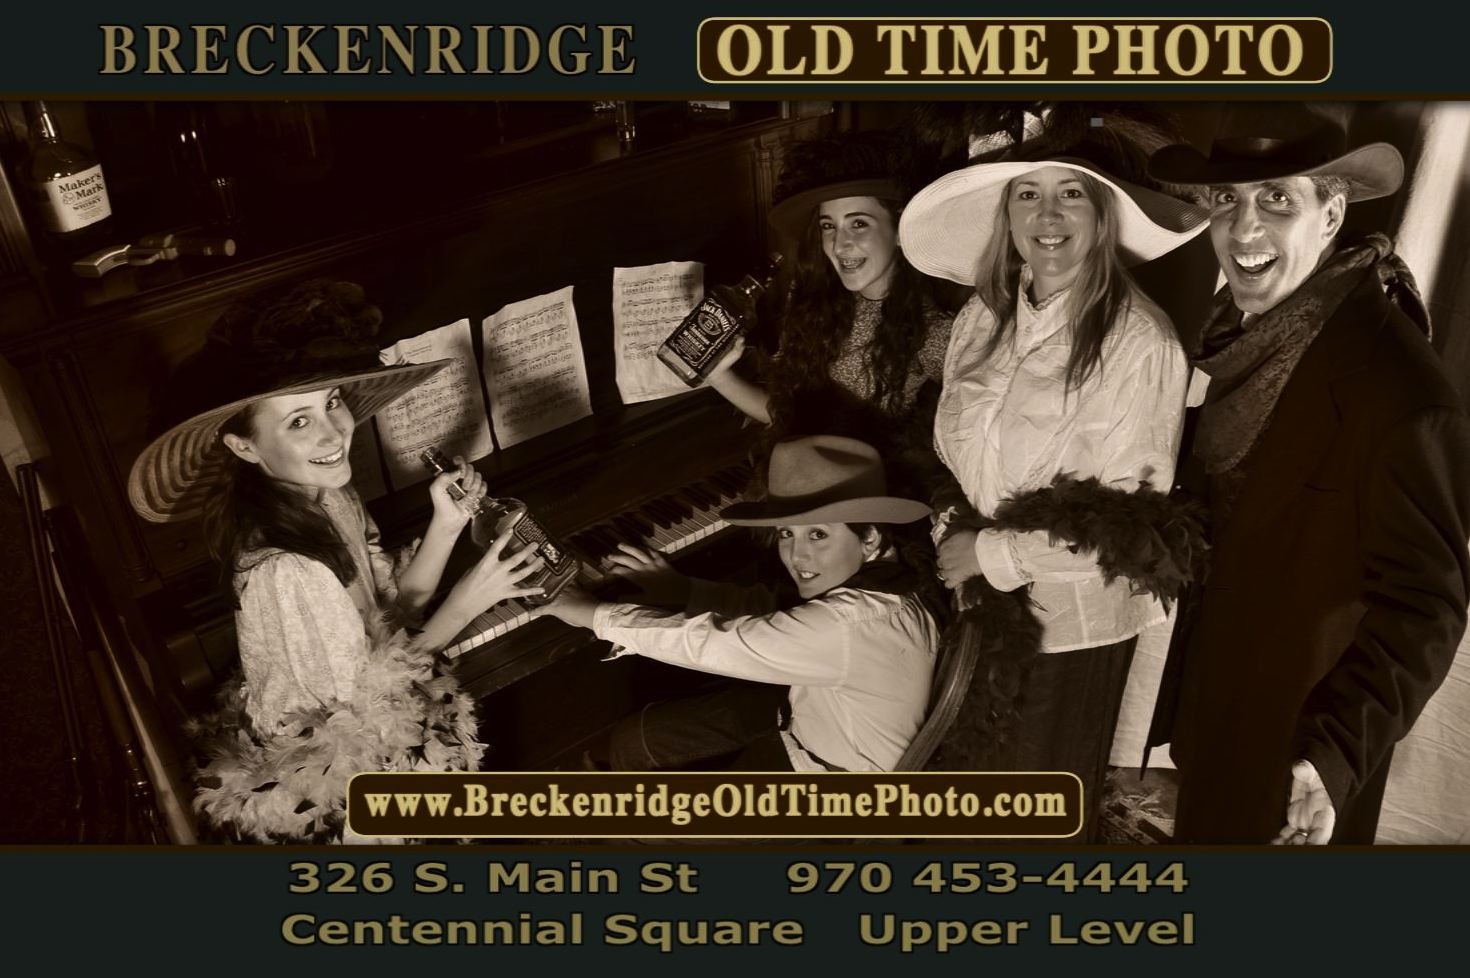 Breckenridge Old Time Photo